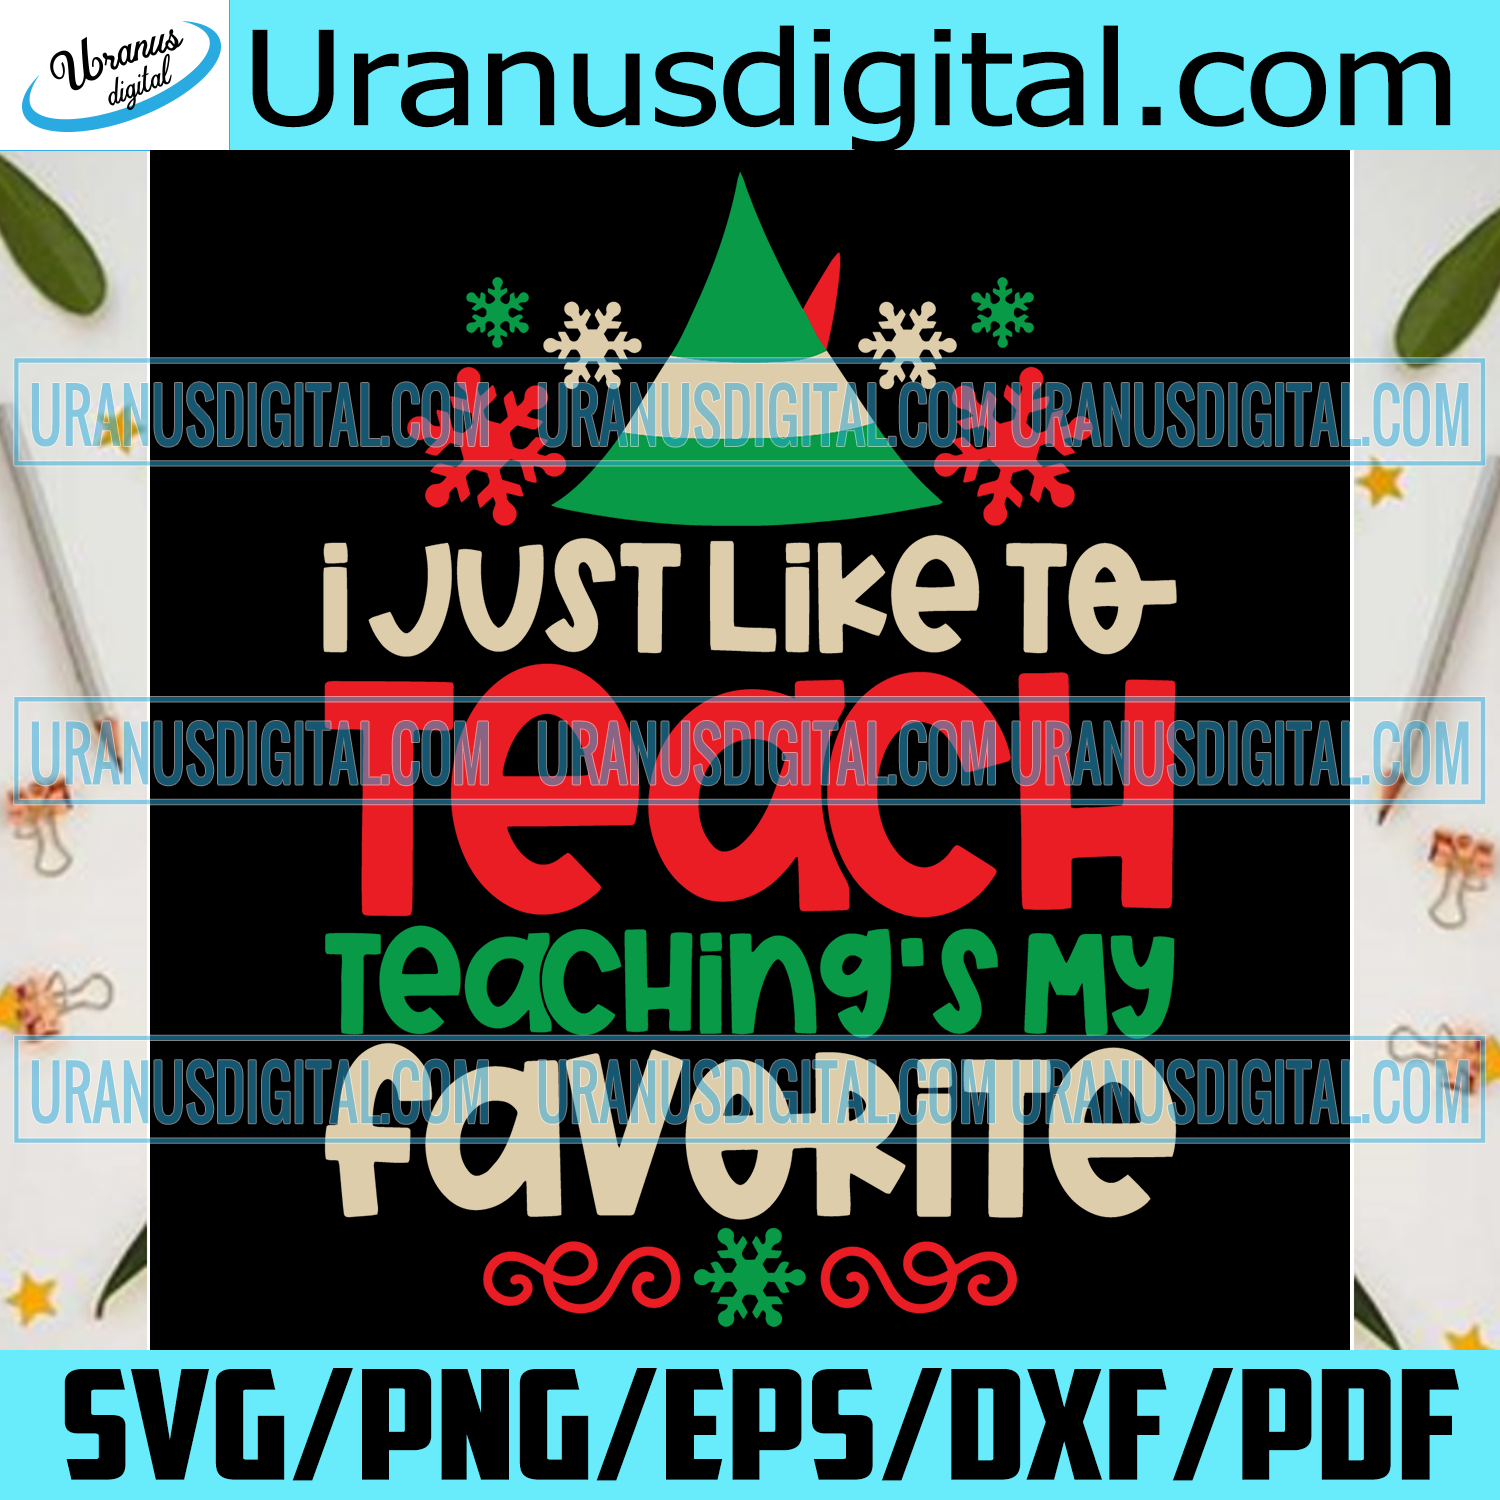 I Just Like To Teach Teaching Is My Favourite Svg, Christmas Svg, Merry Christmas, Xmas Svg, Teacher Svg, Teaching Svg, Teachers Gift, Christmas Teacher Gift, Elf Svg, Elf Teacher, Christmas Elf